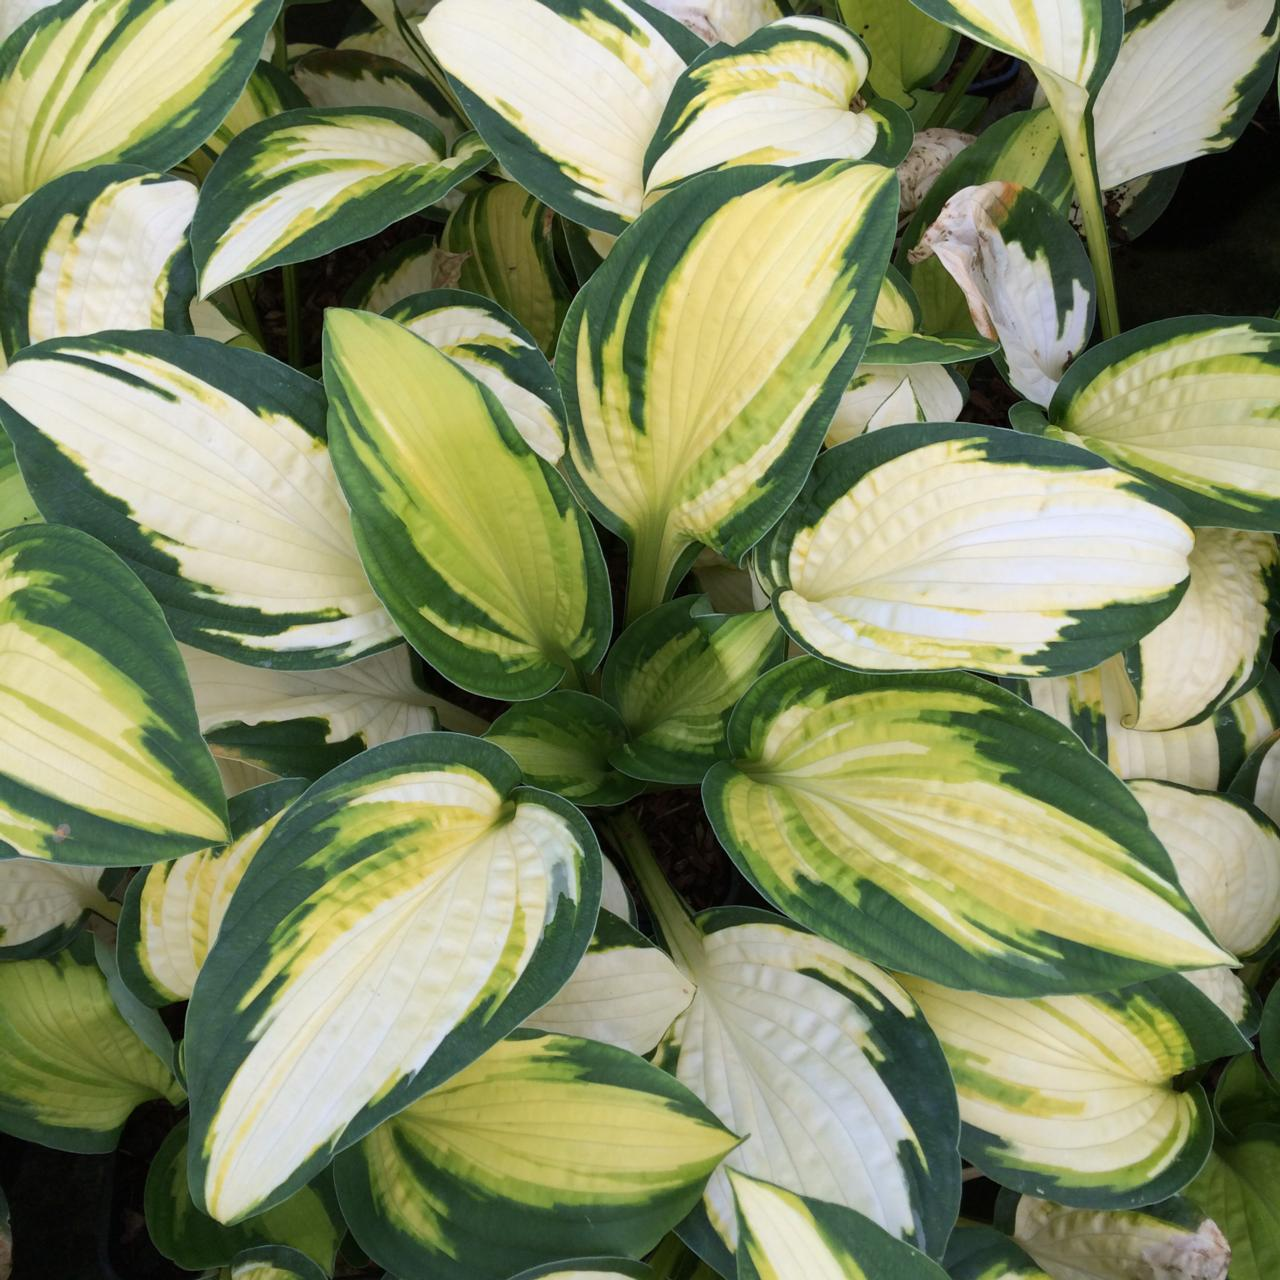 Hosta 'Georgia Sweetheart' plant